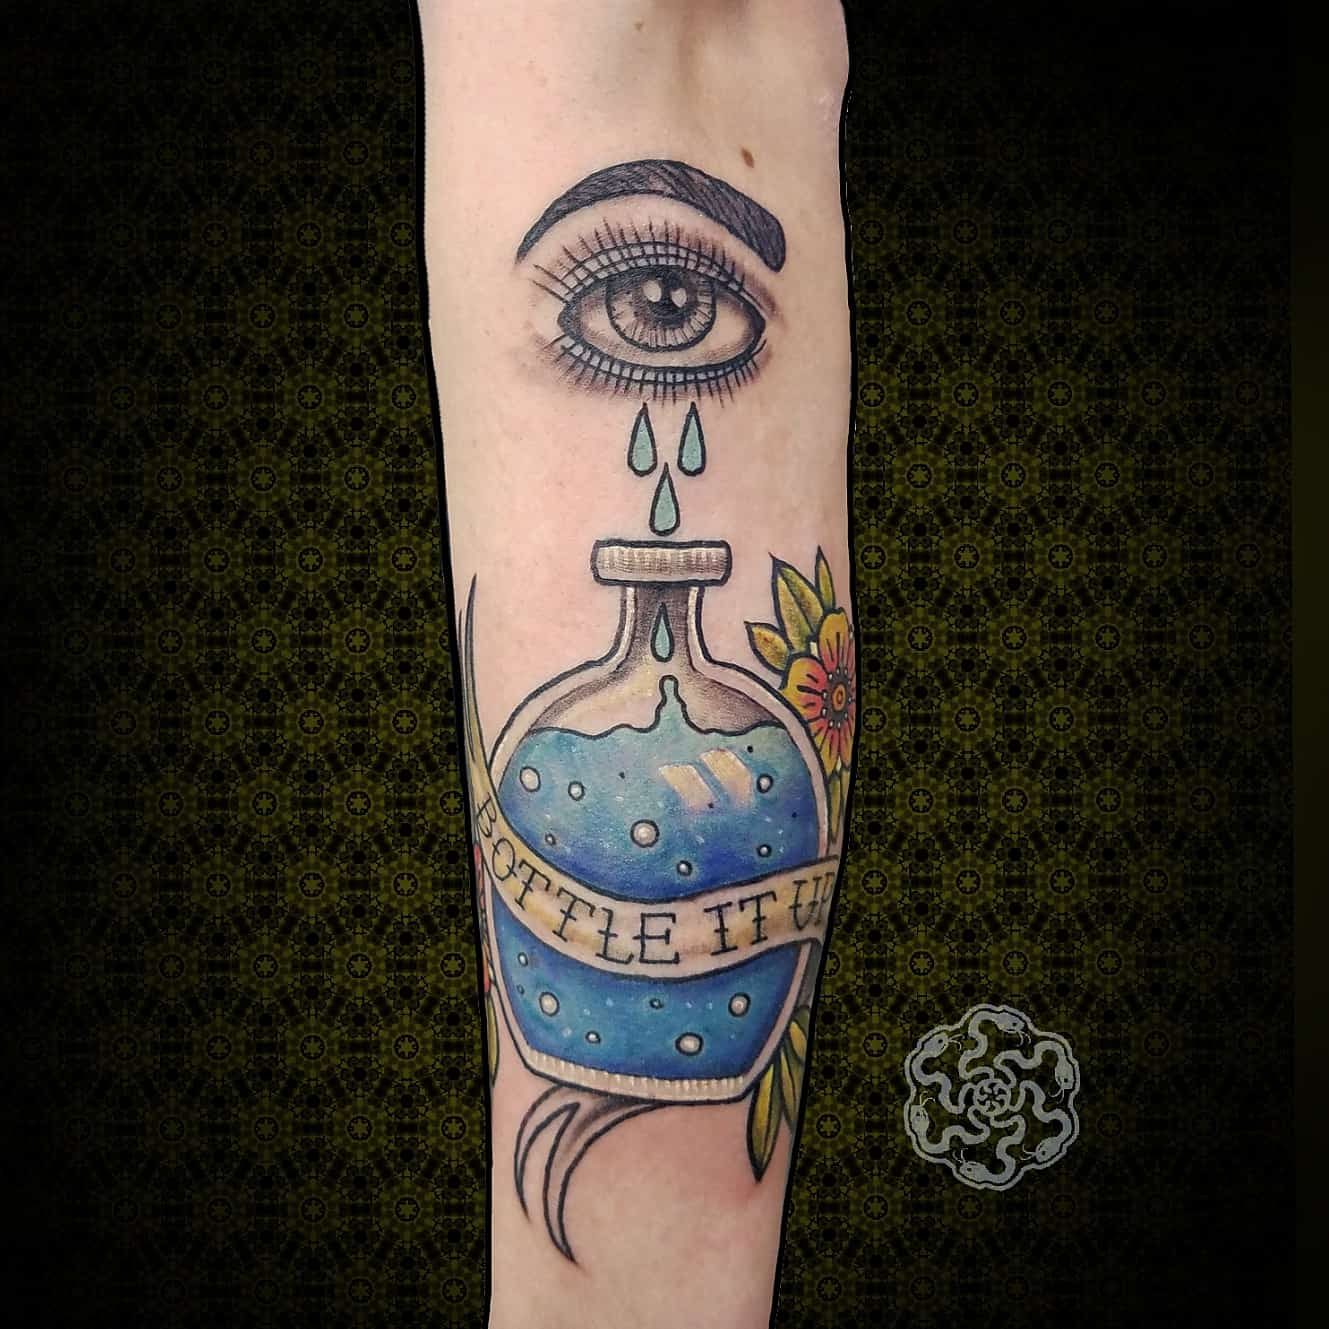 traditional tattoo of the %22bottle it up%22 image on a forearm